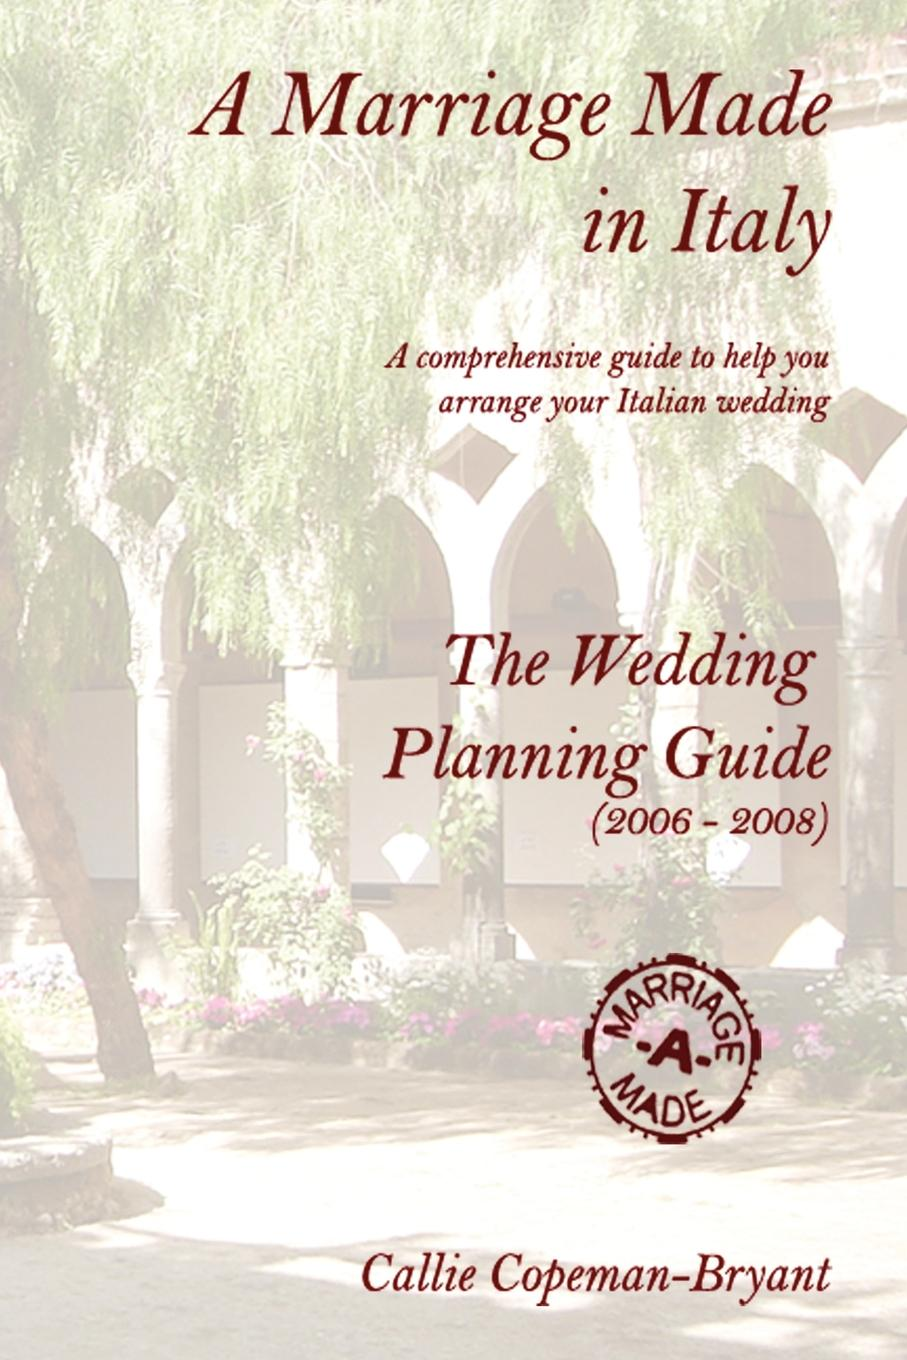 Callie Copeman-Bryant A Marriage Made in Italy - The Wedding Planning Guide (2006 - 2008)